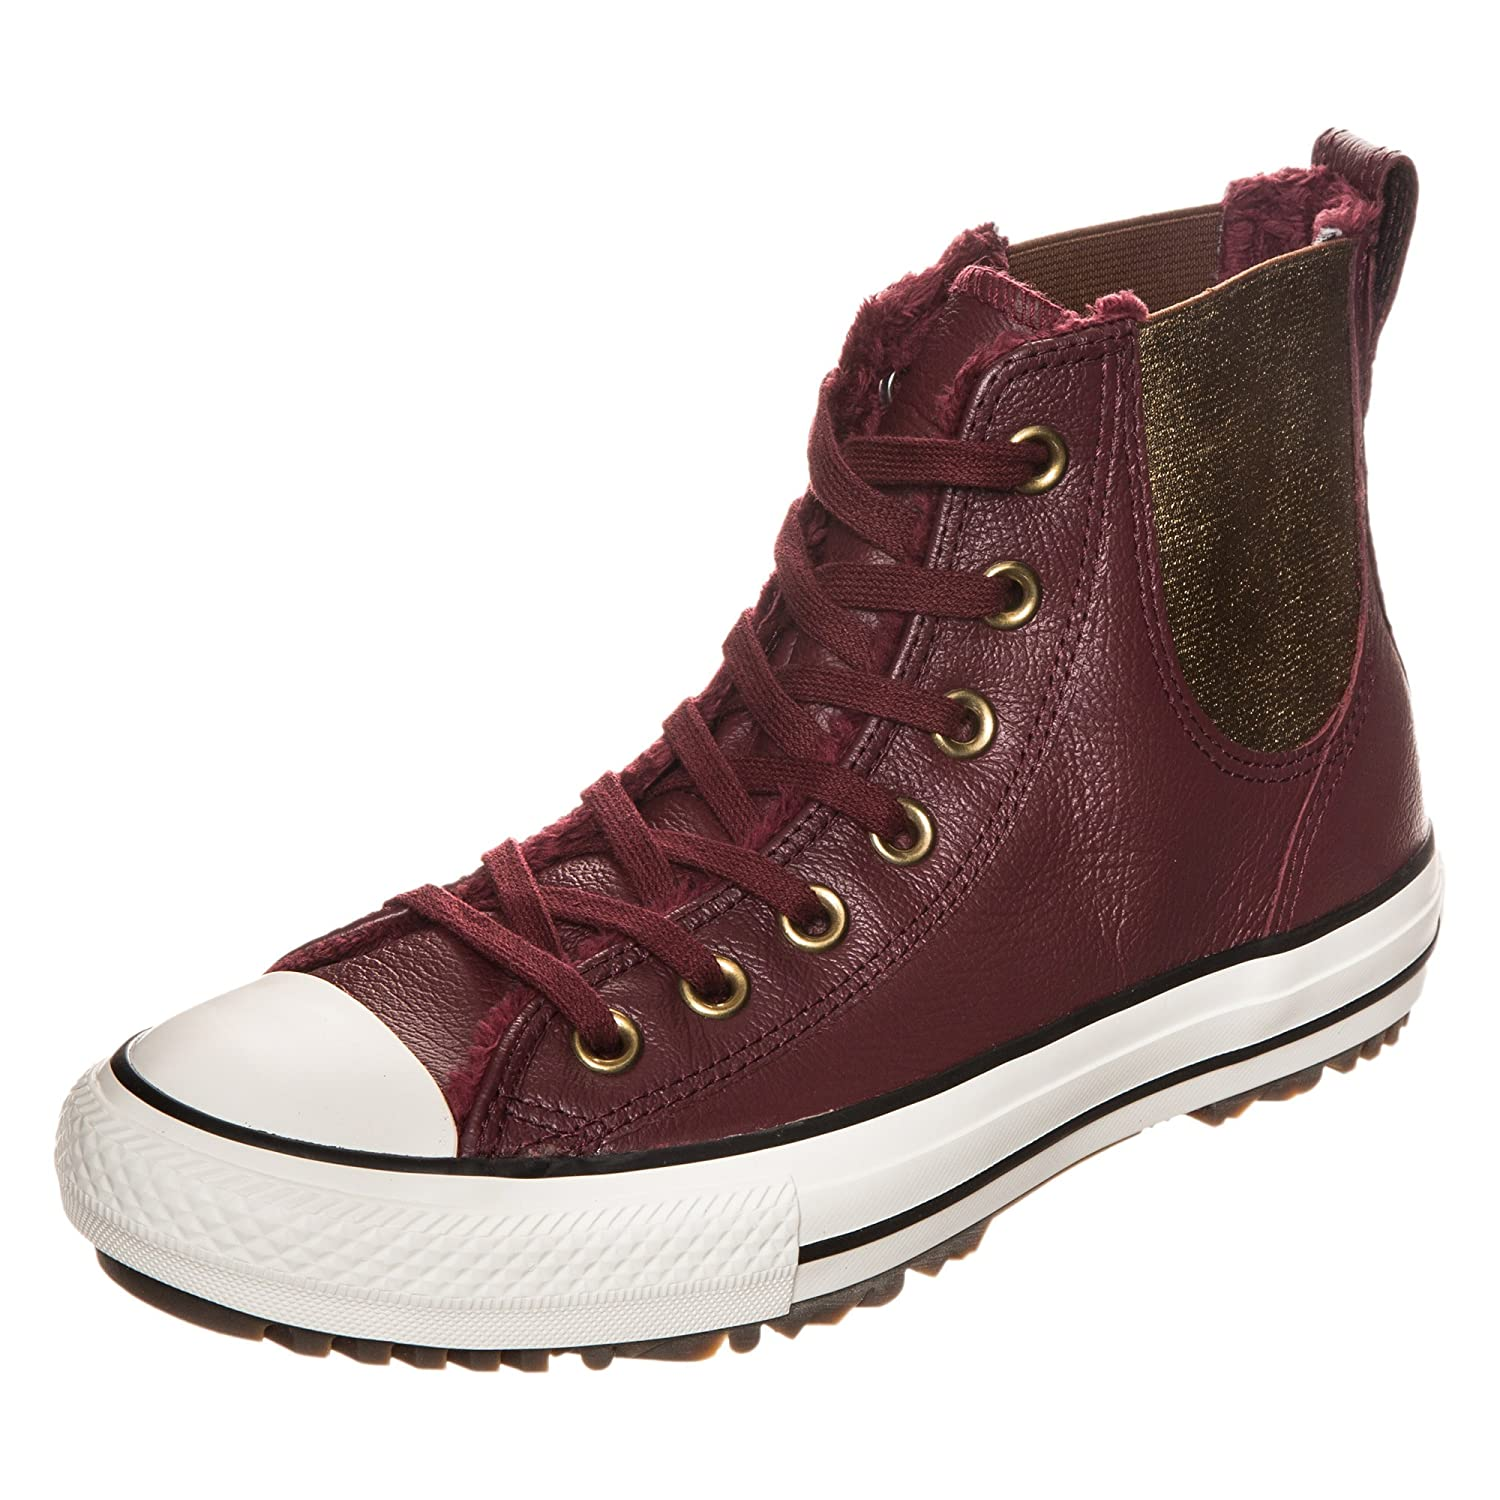 4447bb617762 Amazon.com | Converse Ctas Leather Fur Womens Chelsea Boots | Fashion  Sneakers